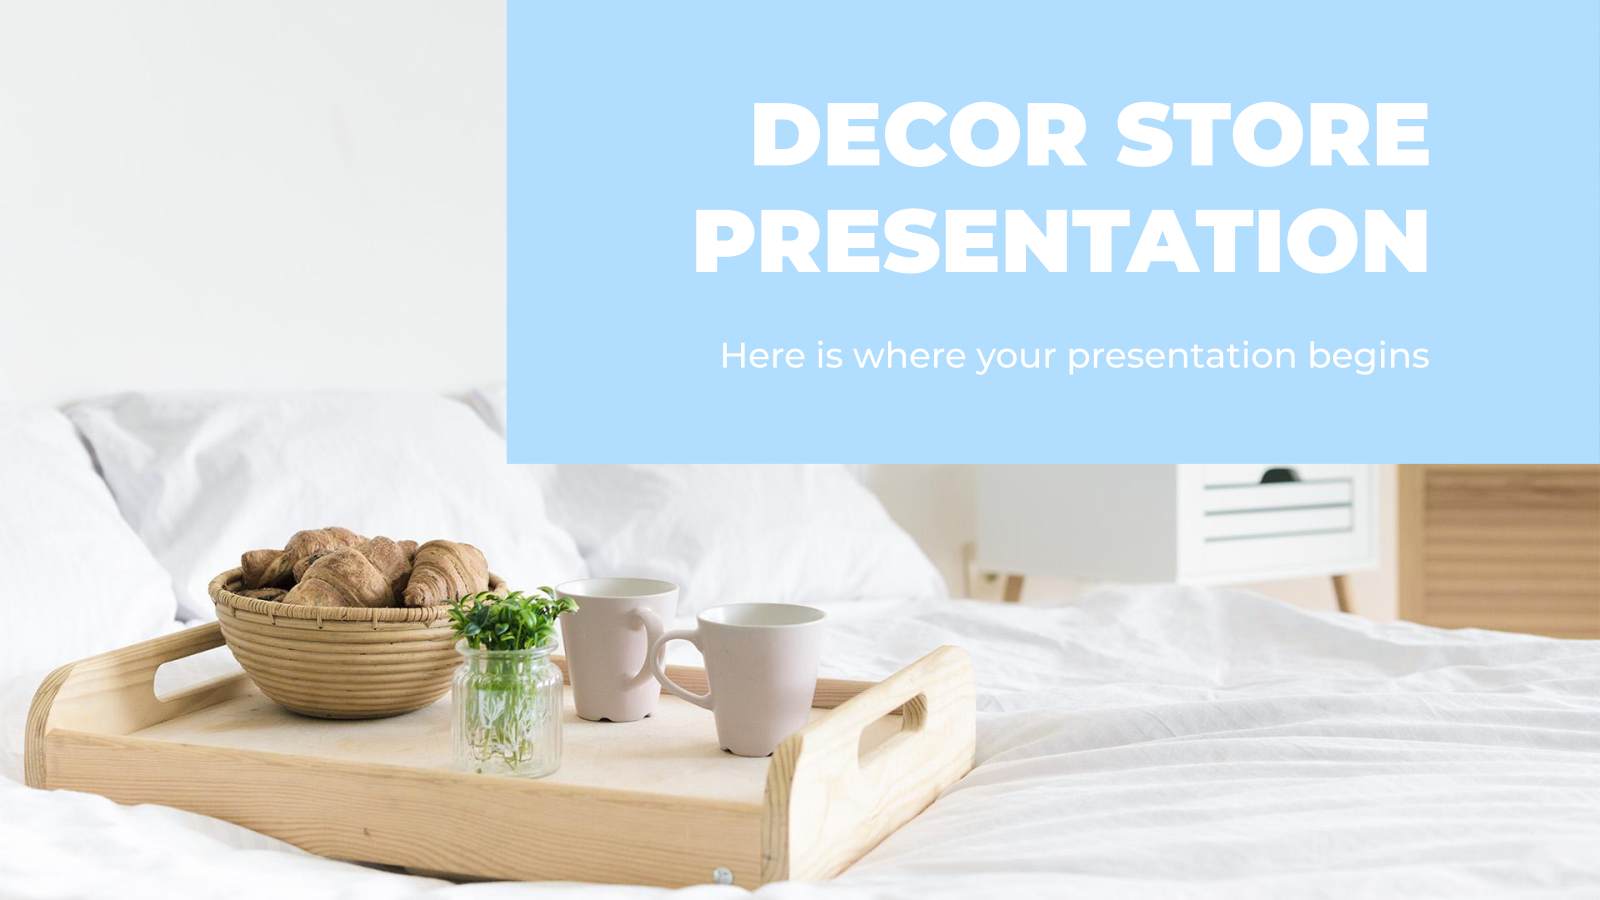 Decor Store presentation template